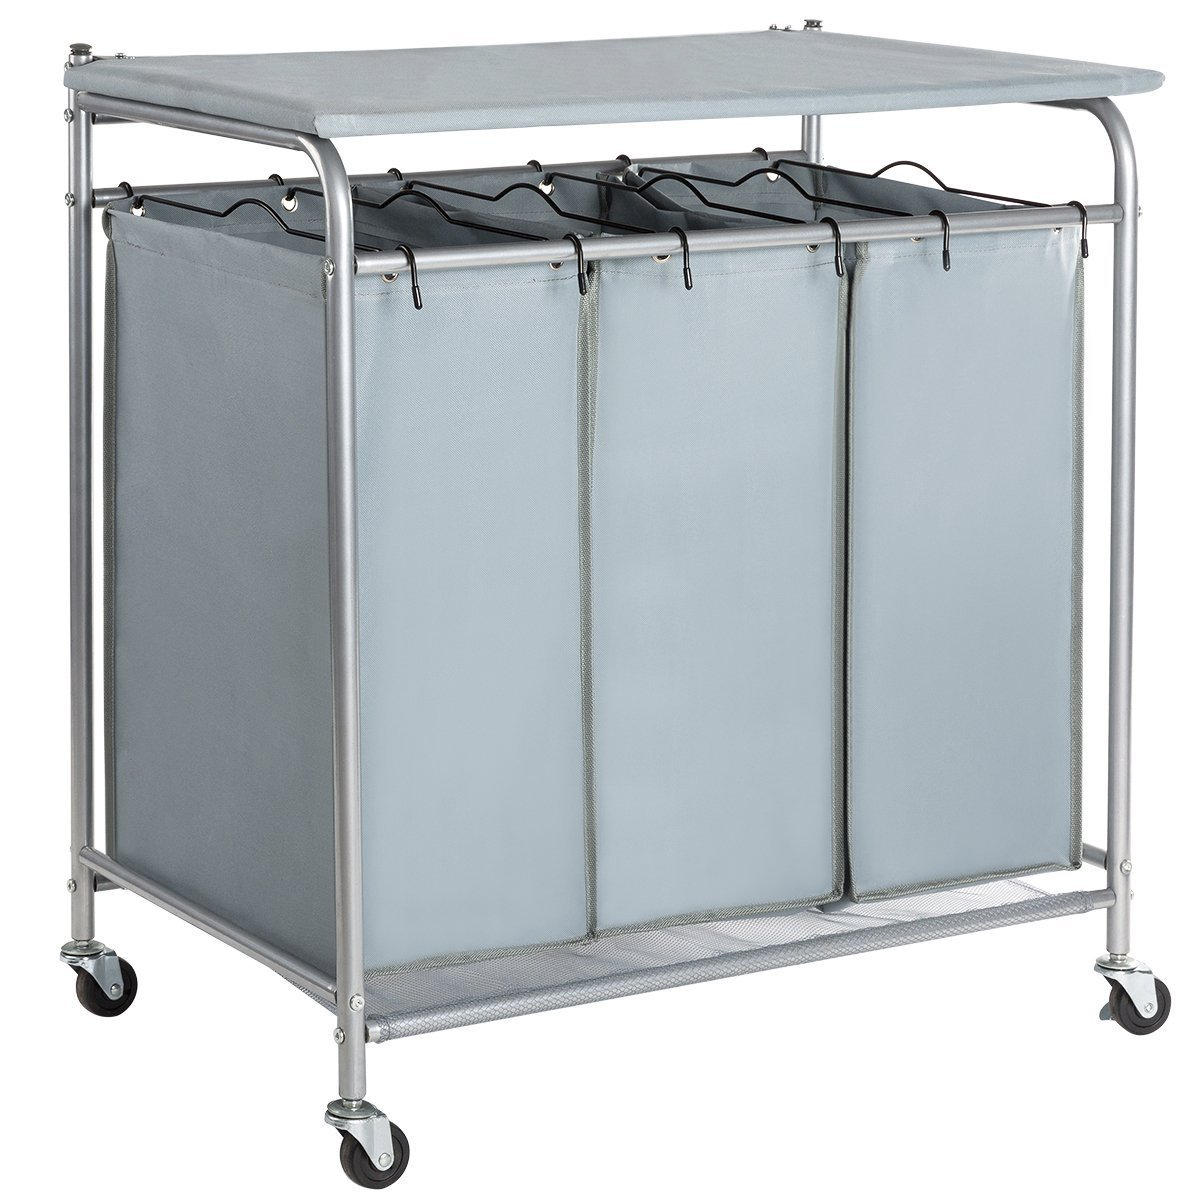 HollyHOME Laundry Sorter Cart with Foldable Ironing Board with 3 Lift-Off Bags Rolling Heavy-Duty Laundry Hamper with Removable Bags Mobile Brake Caster Light Gray